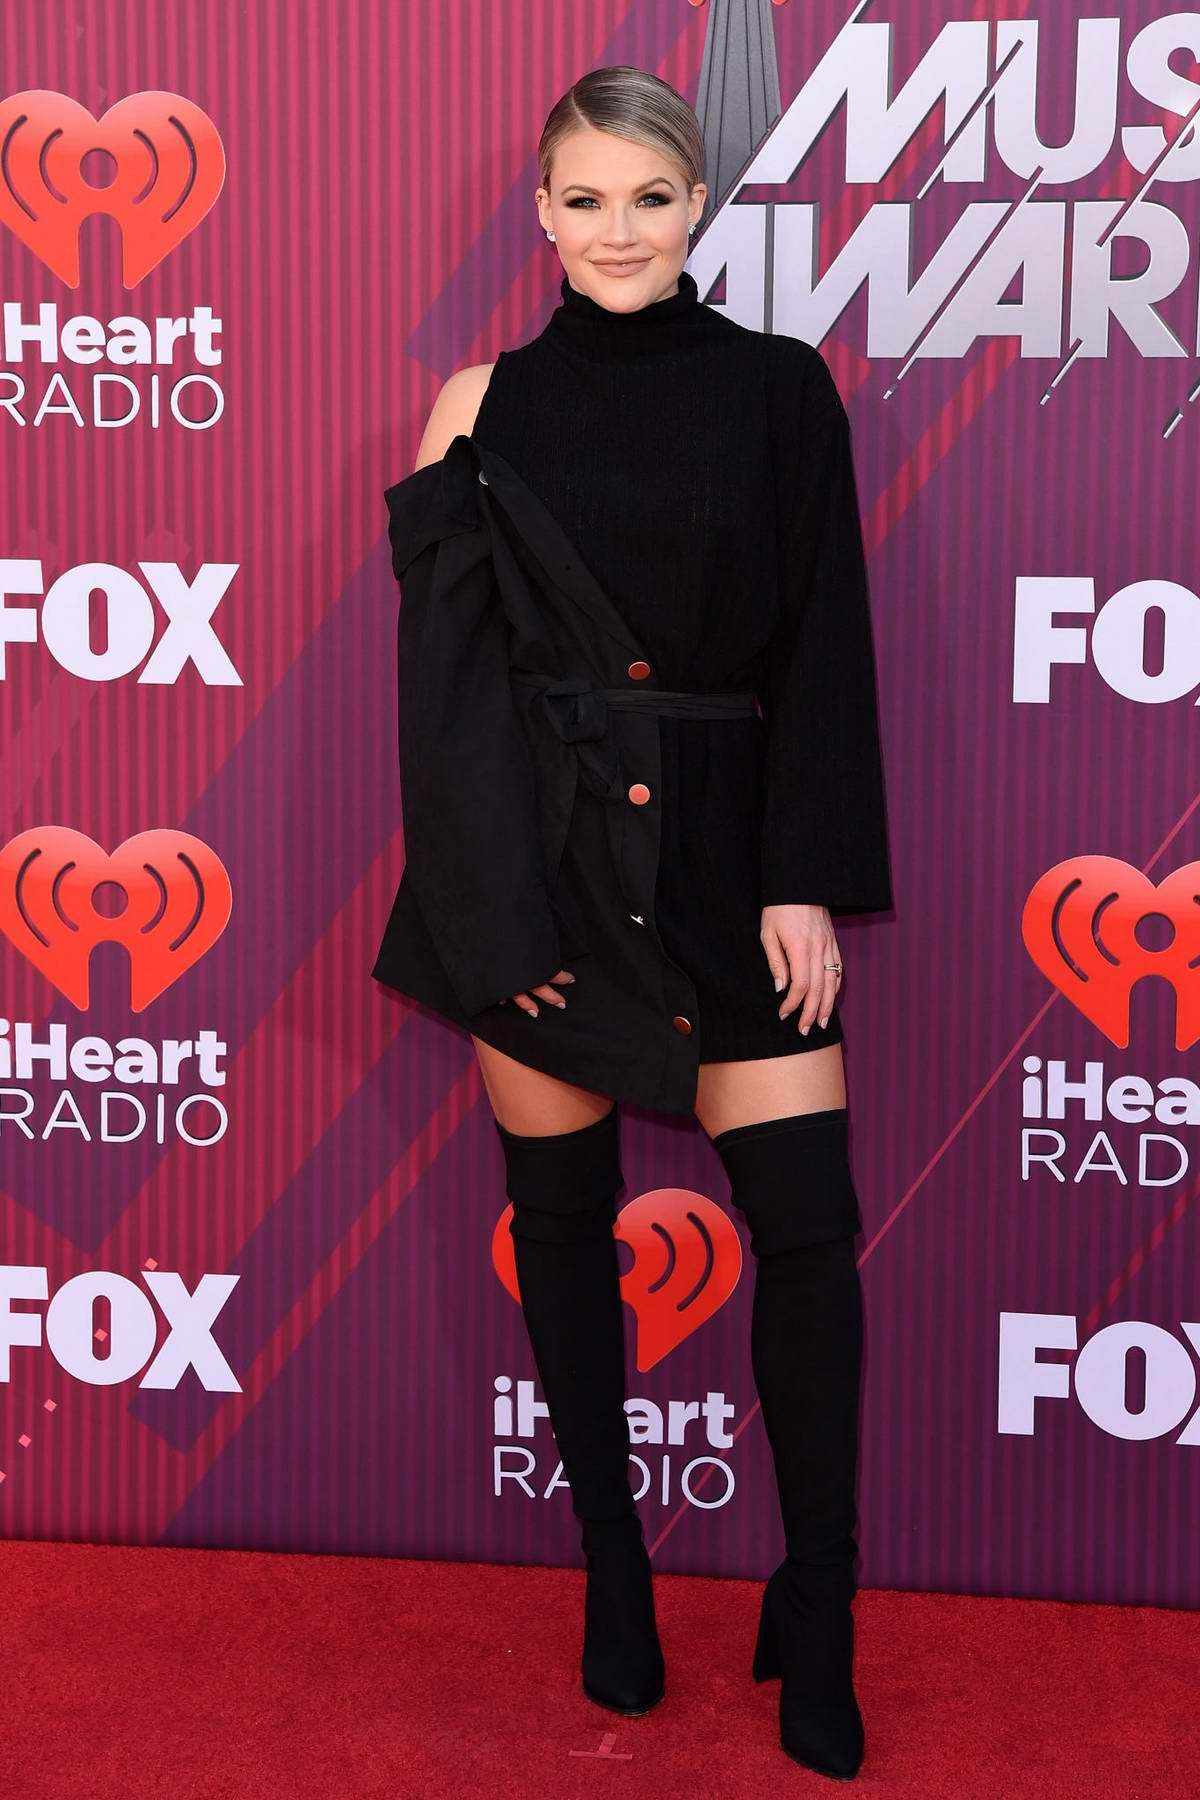 Witney Carson attends the 2019 iHeartRadio Music Awards at Microsoft Theater in Los Angeles